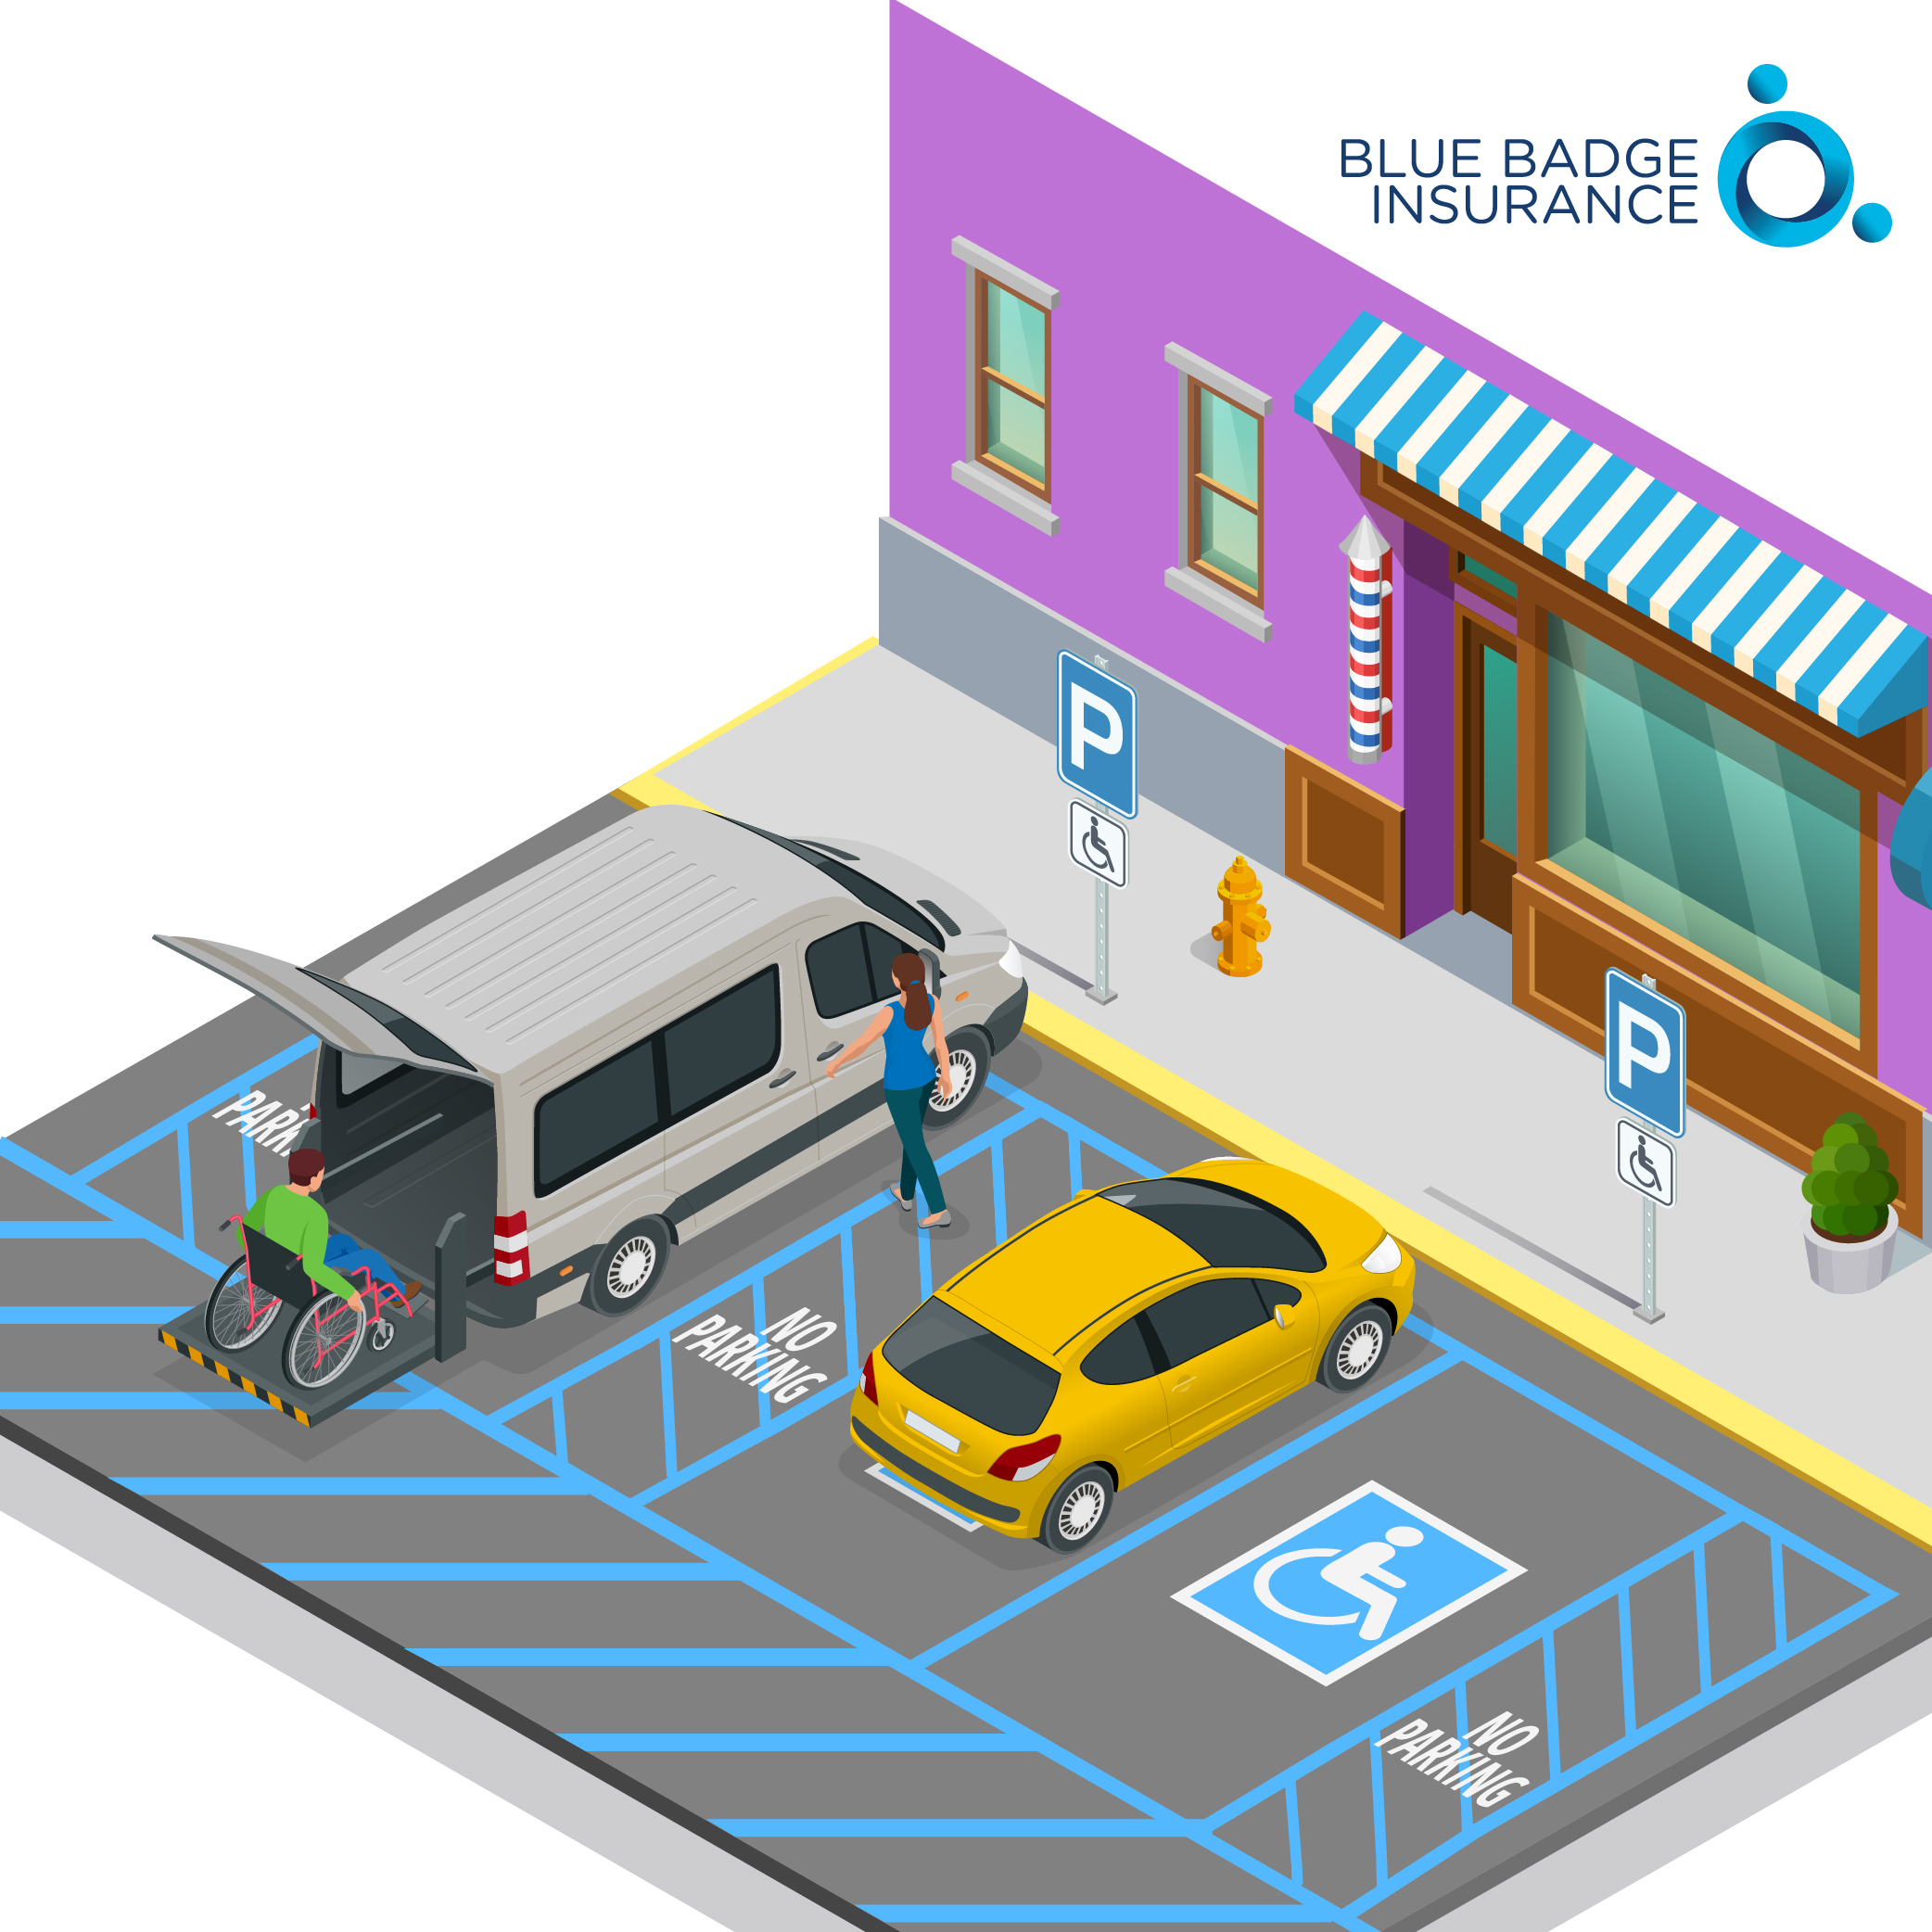 accessible parking spaces are specially designed